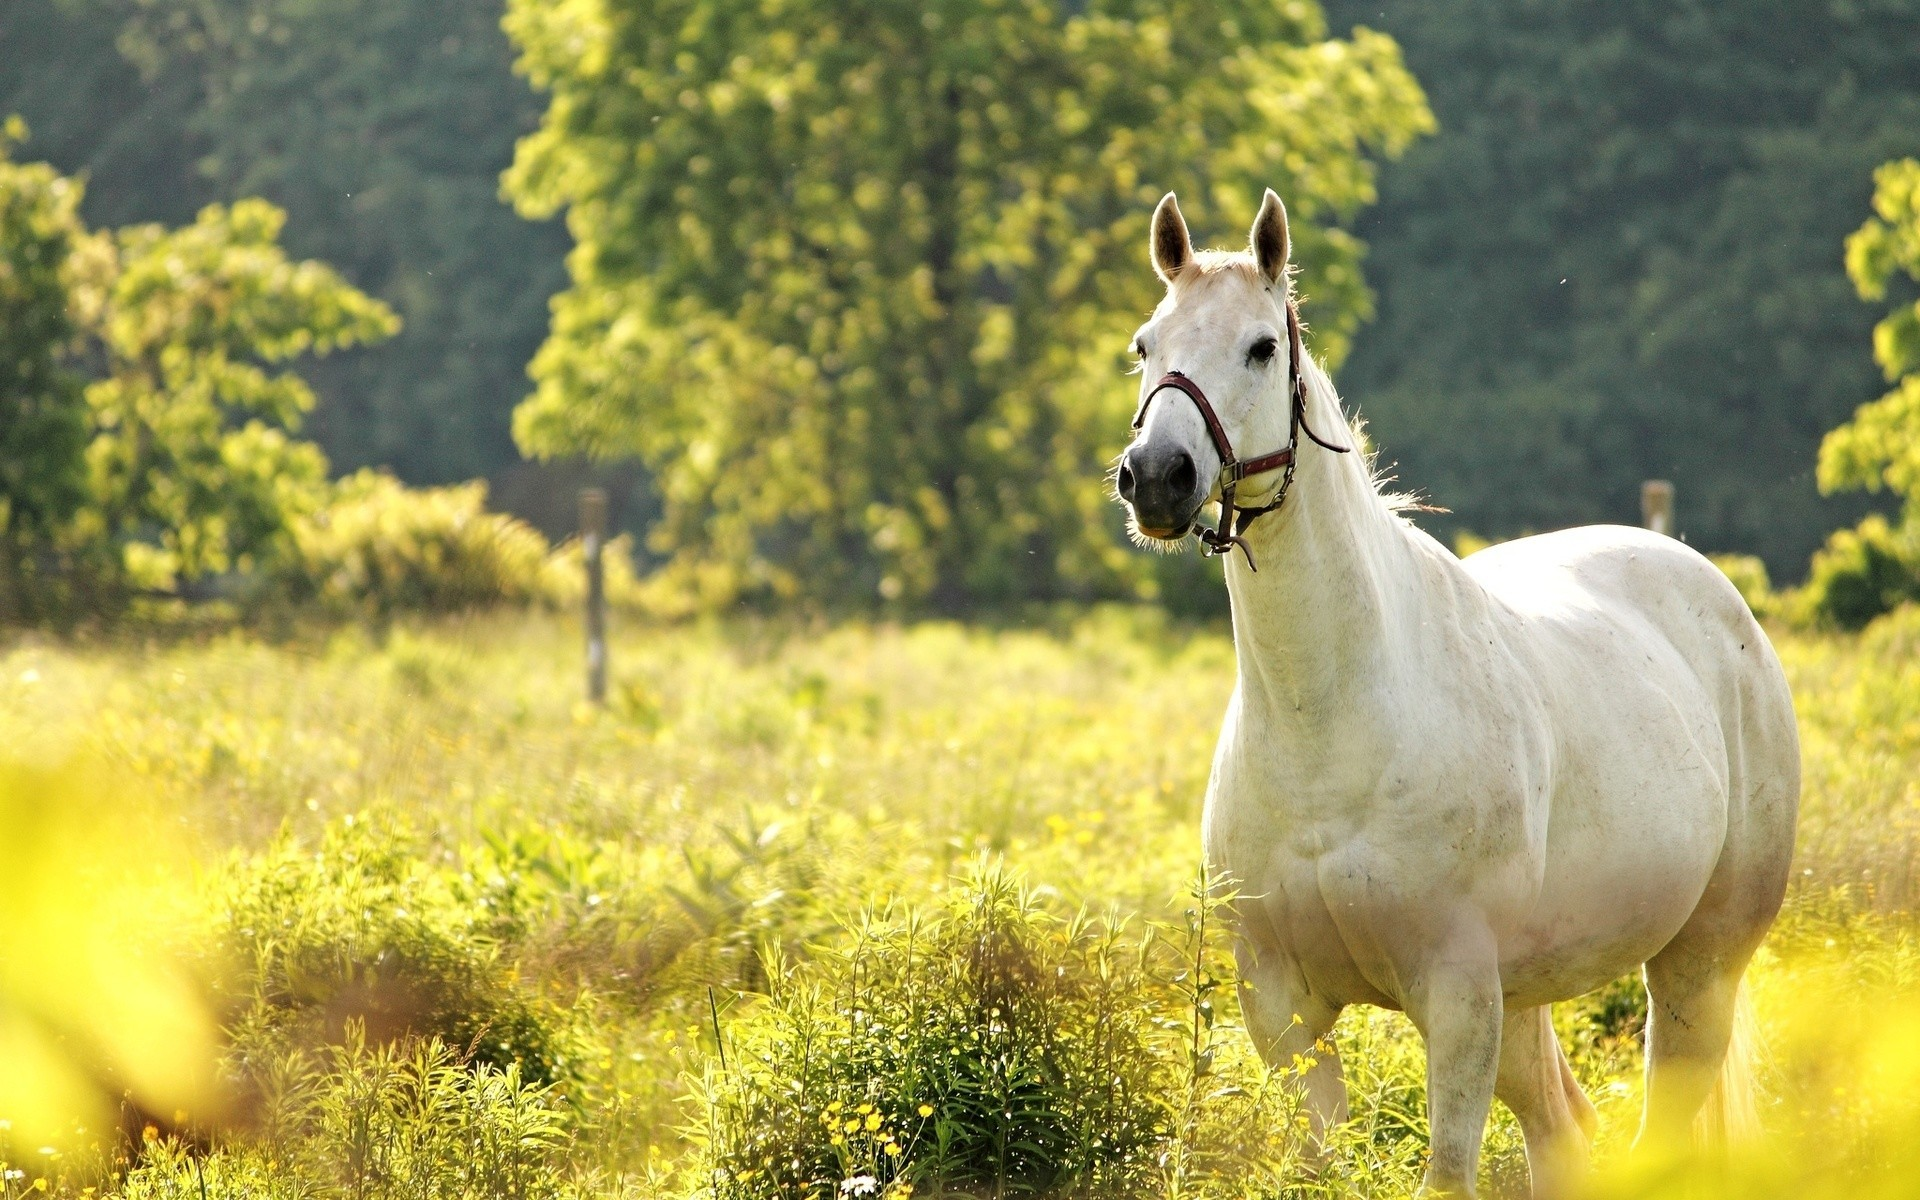 Smart Girl Wallpaper Free Download Cool Horse Backgrounds 57 Images